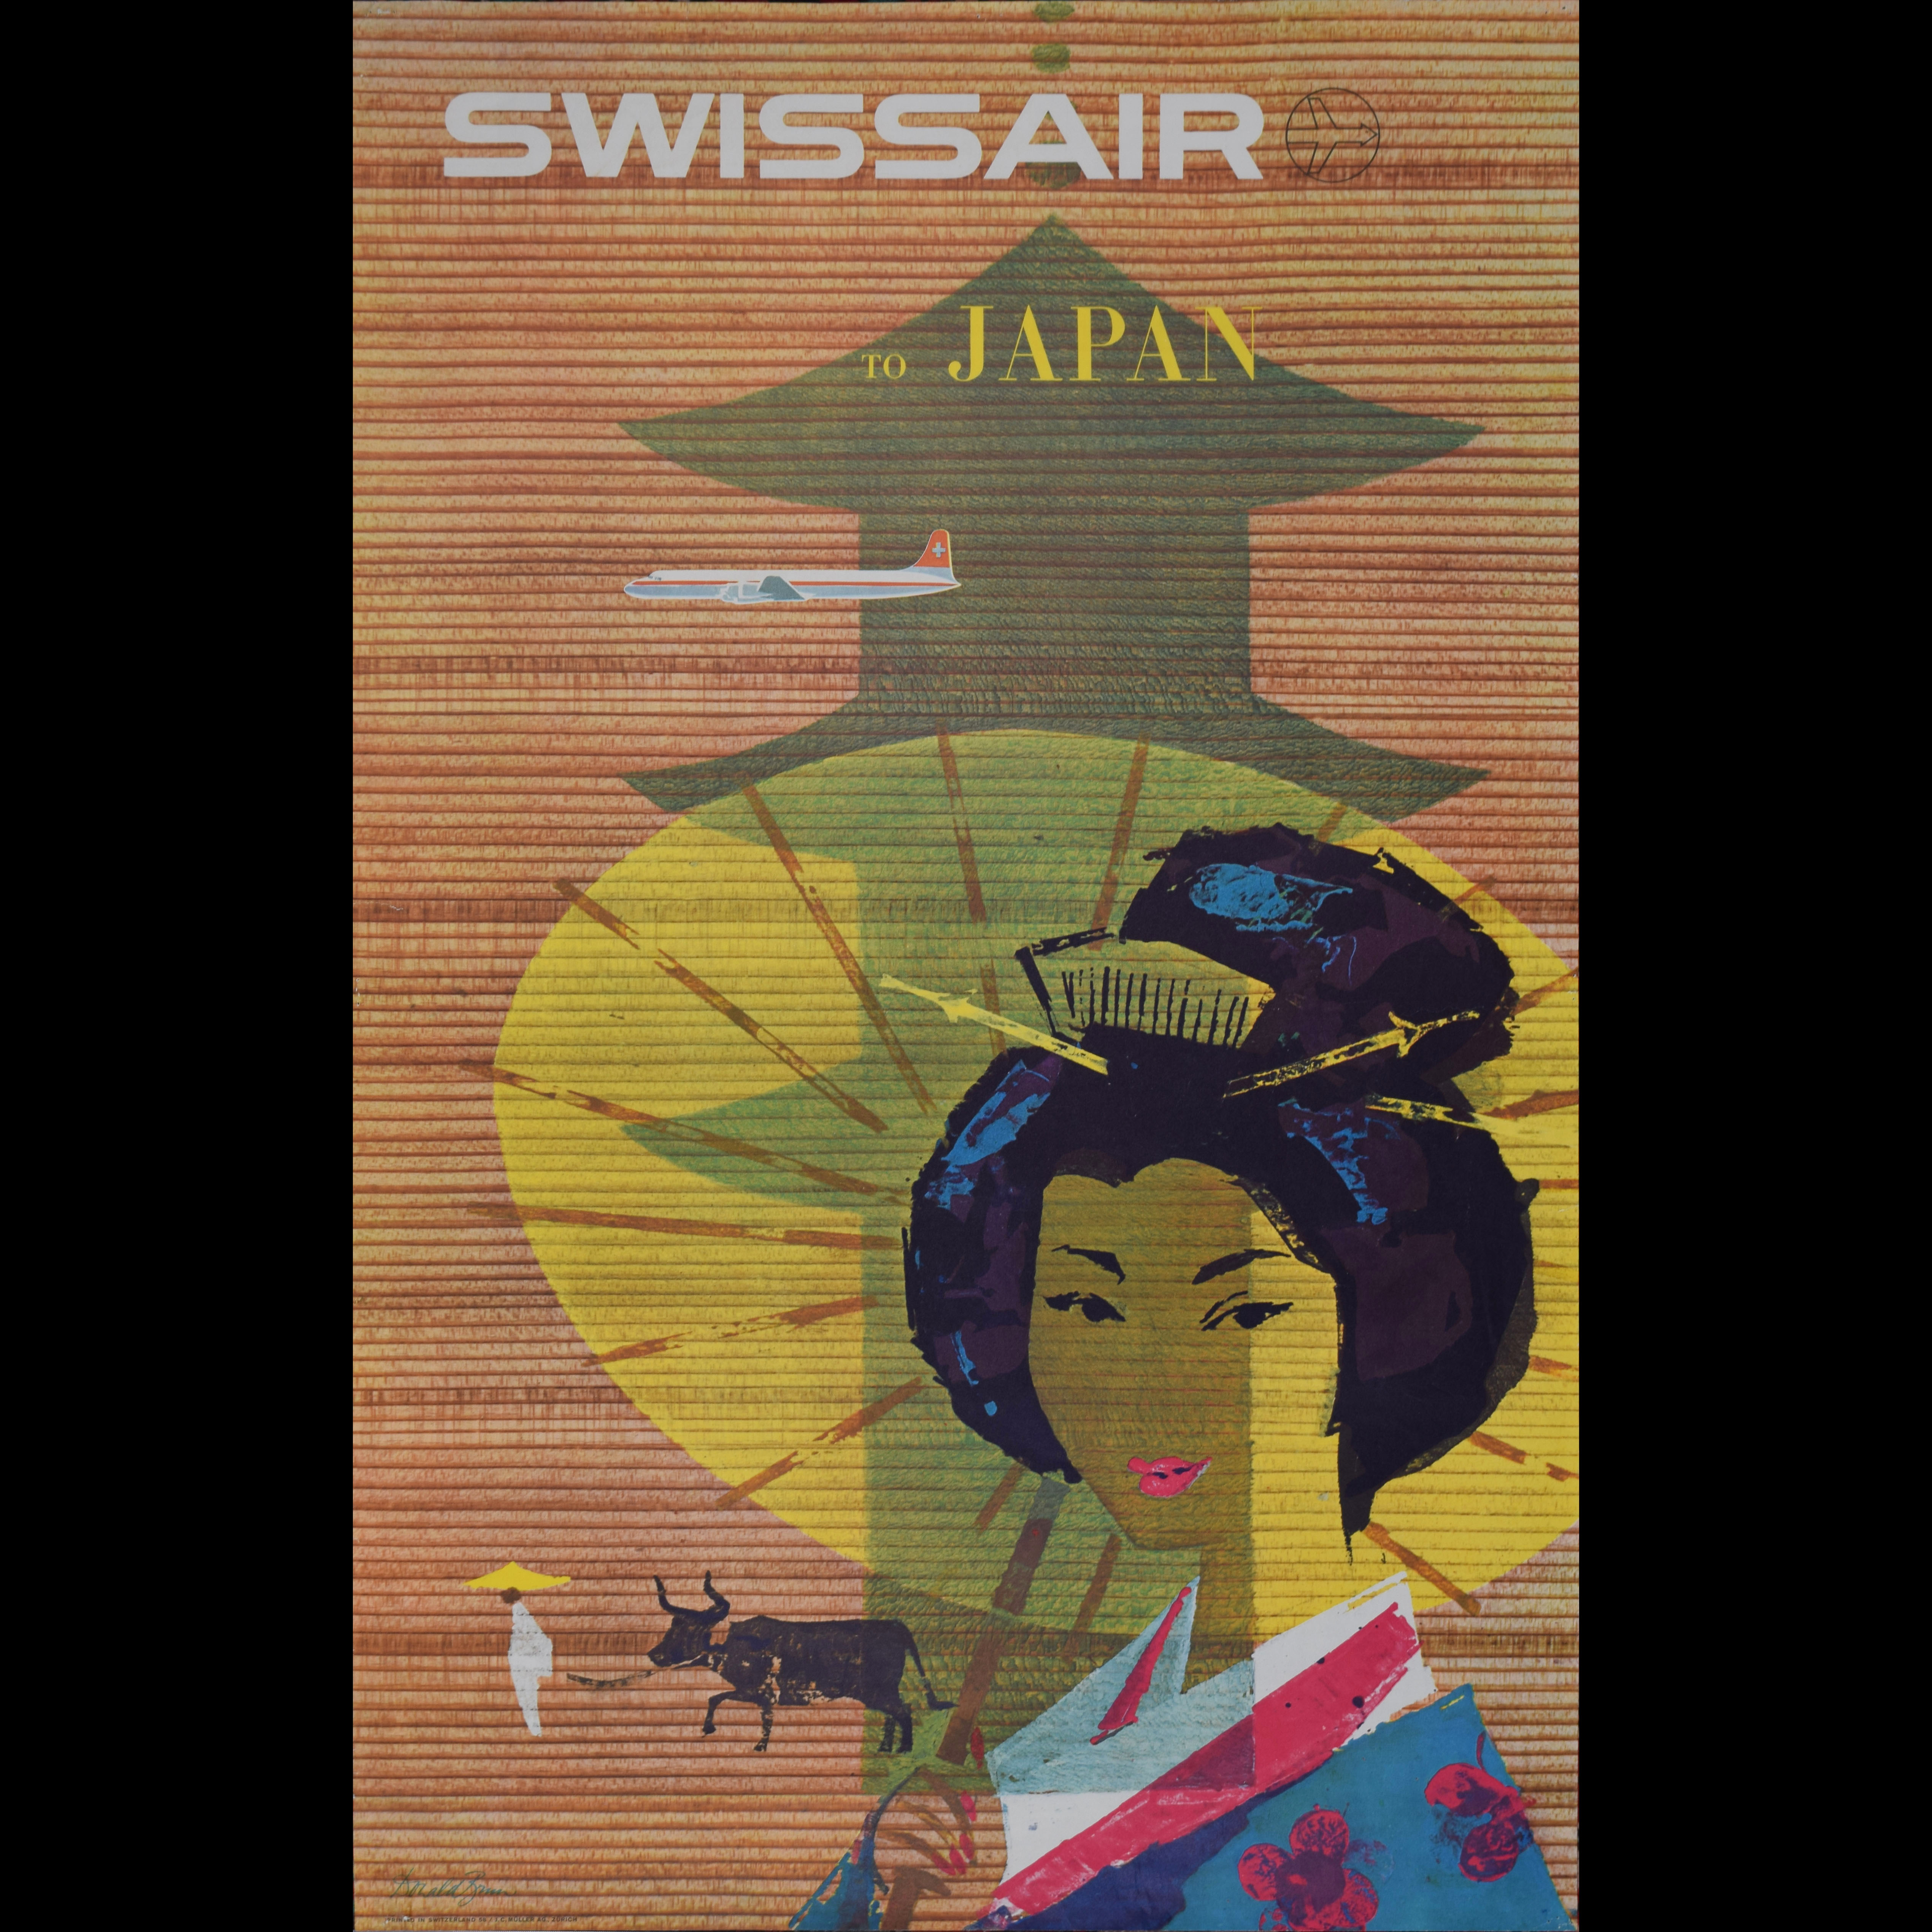 Donald Brun Swissair to Japan